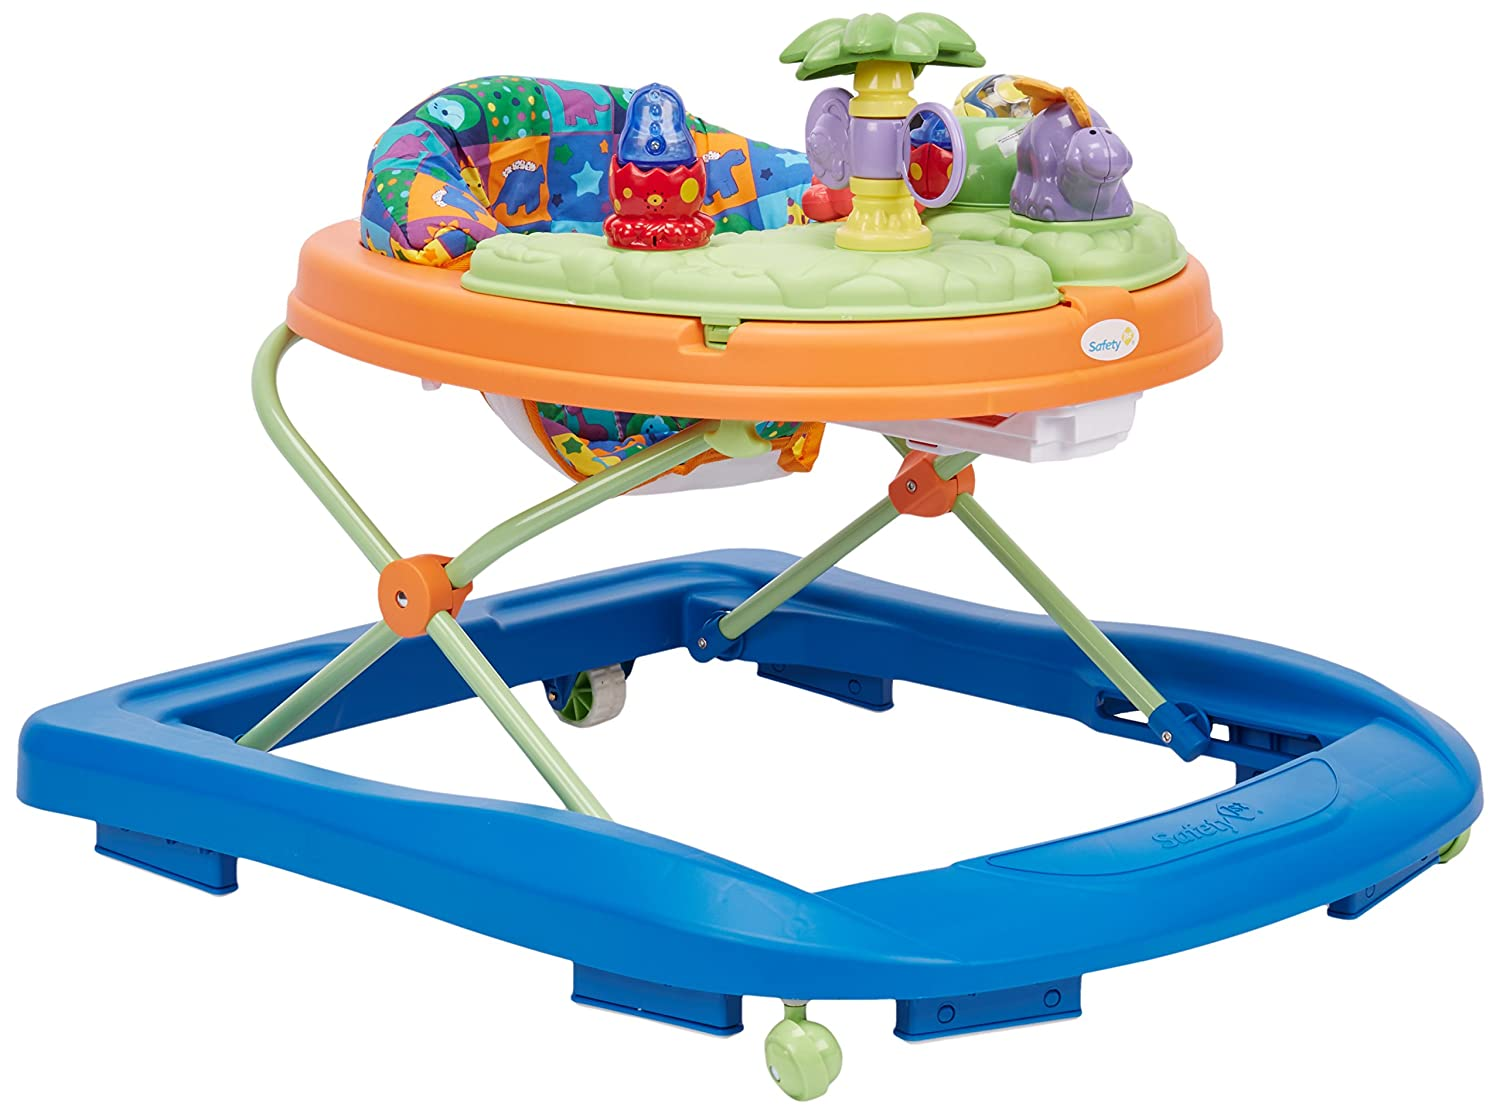 Cool Toys For Baby Boys : Cool toys for year old boys birthday christmas